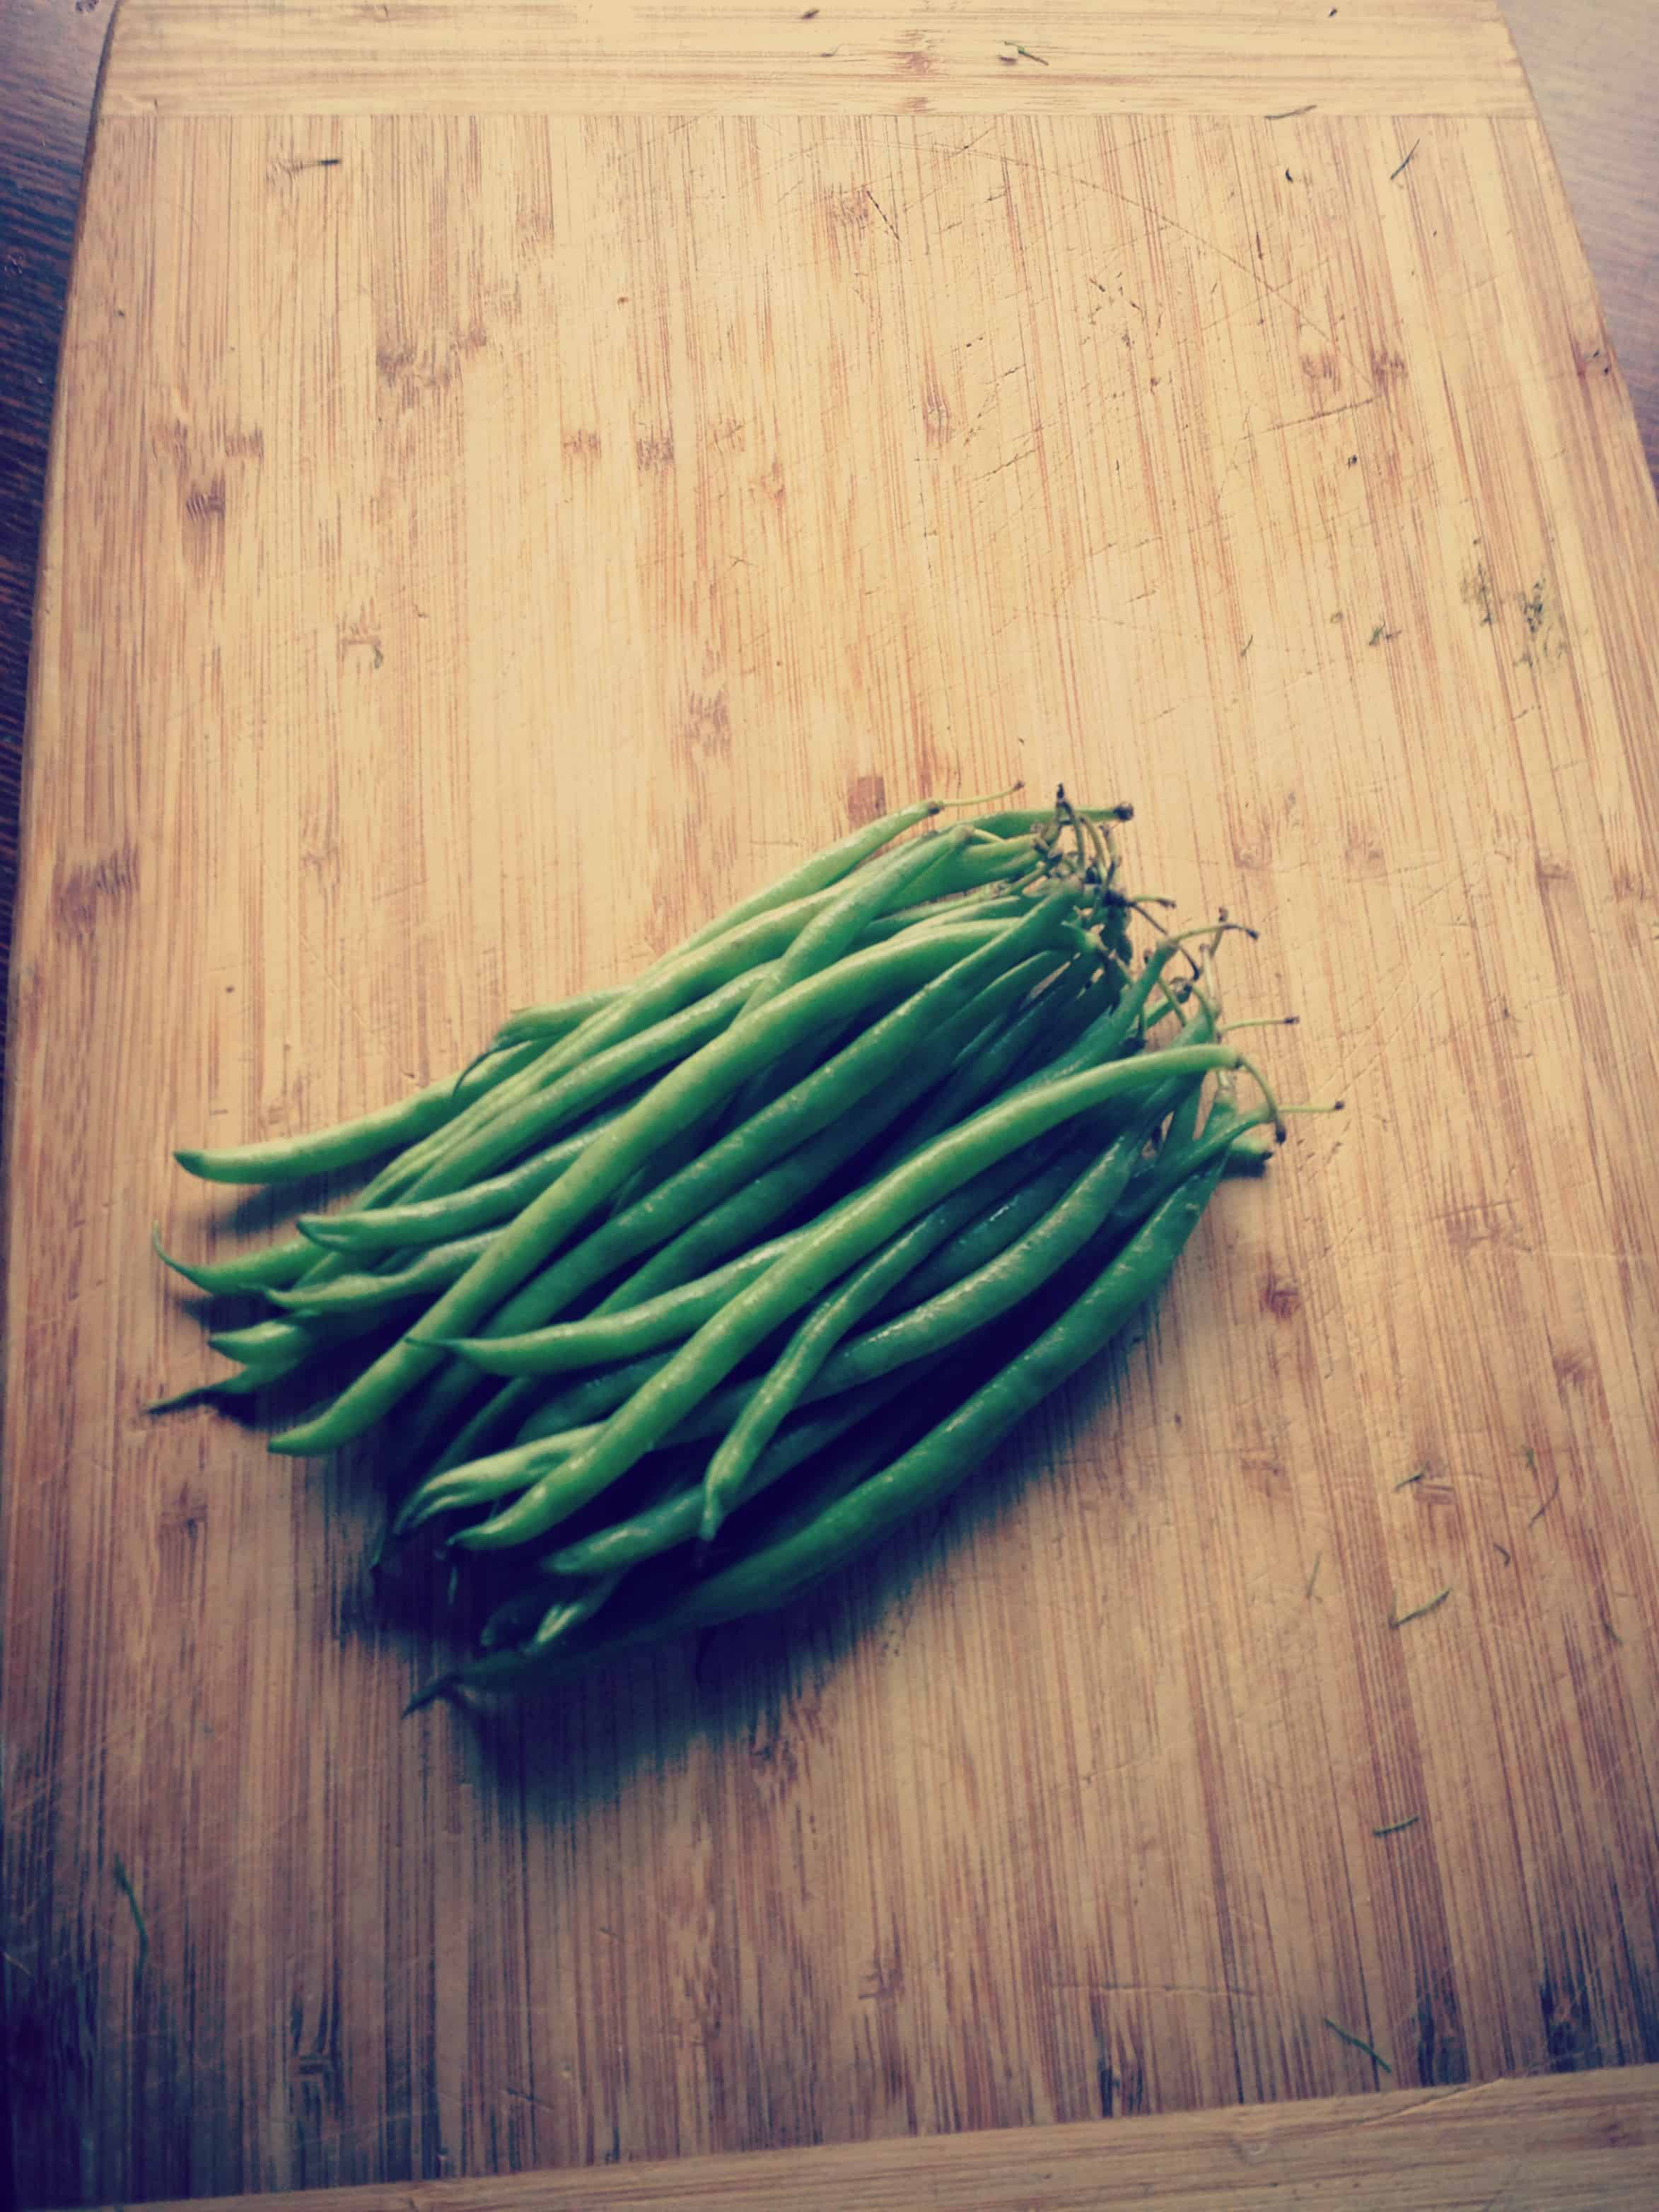 A pile of fresh green beans on a wood cutting board.